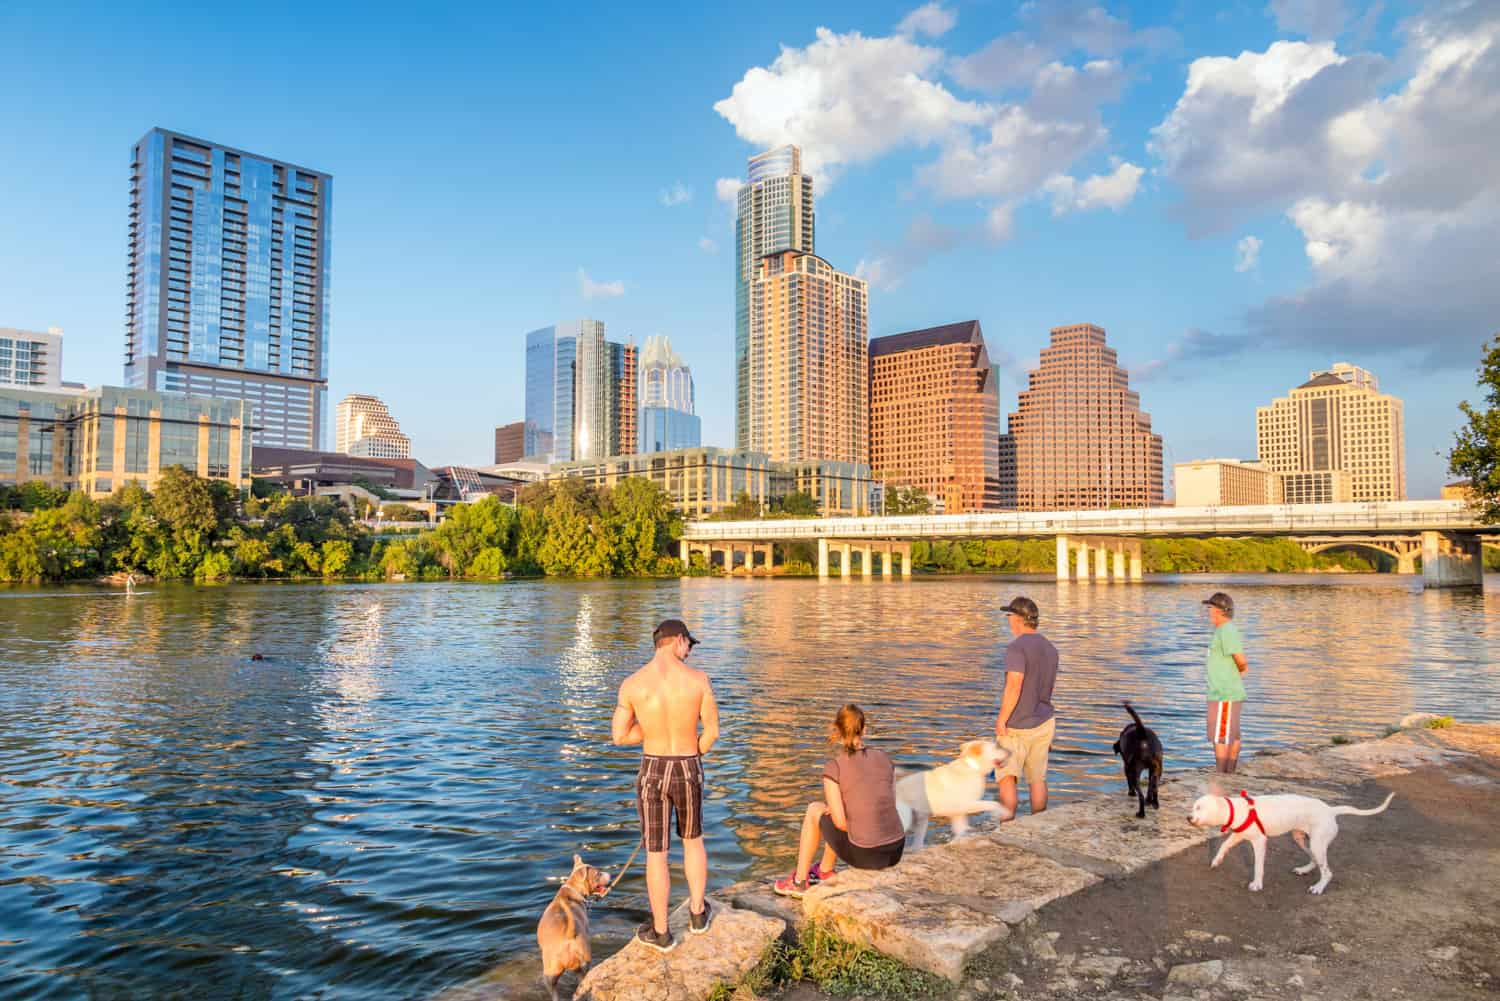 People and dogs on the dog friendly lakeshore with the Austin skyline across the lake